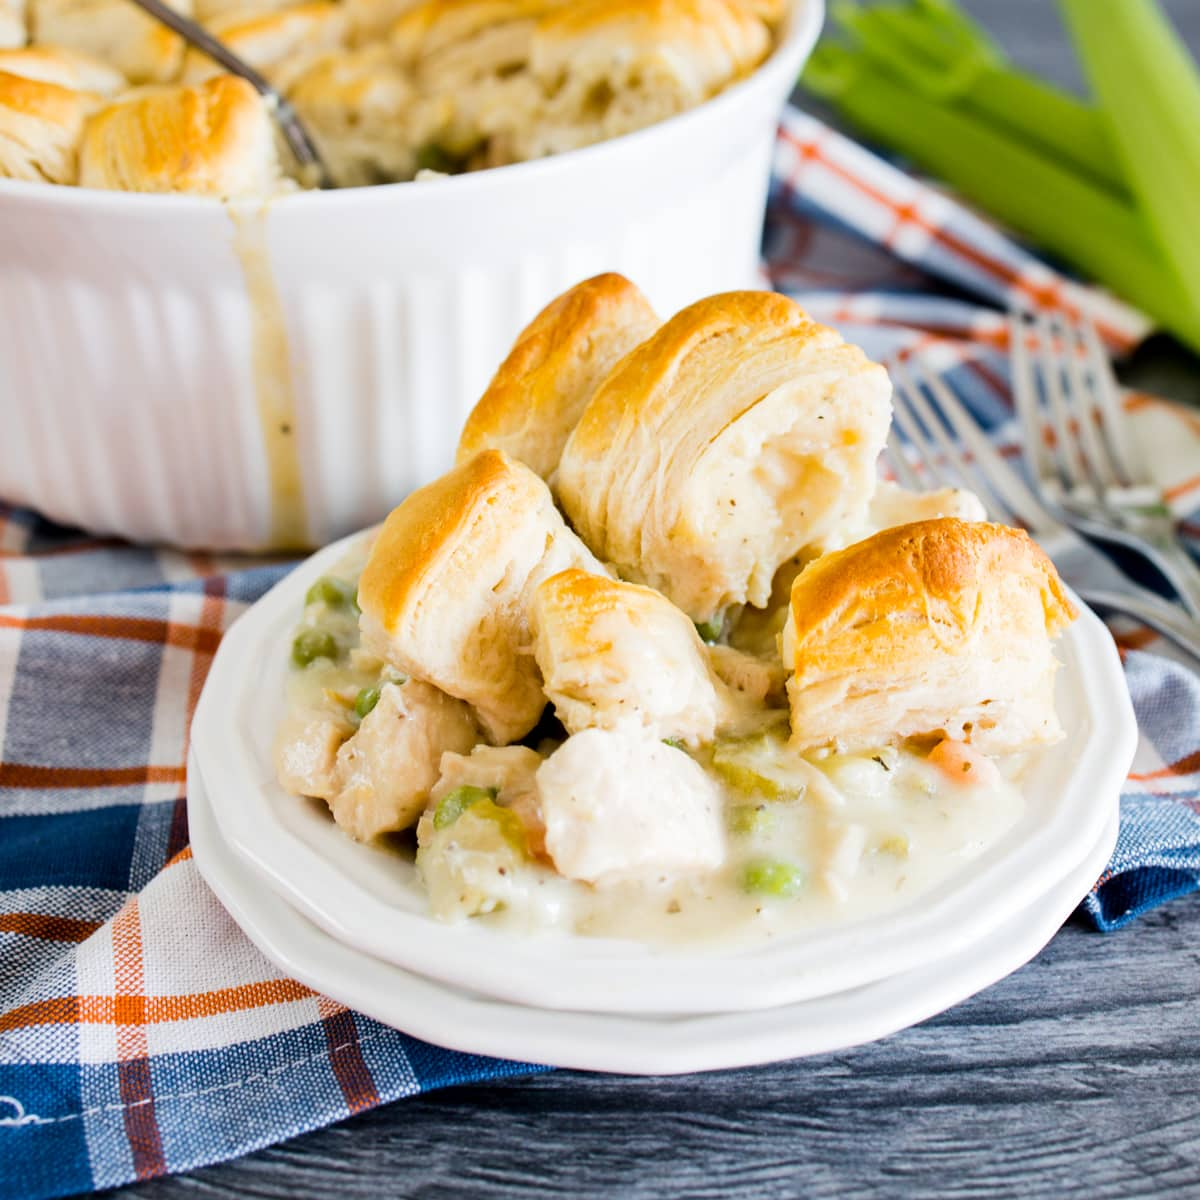 Delicious Instant Pot Chicken Pot Pie with Biscuits